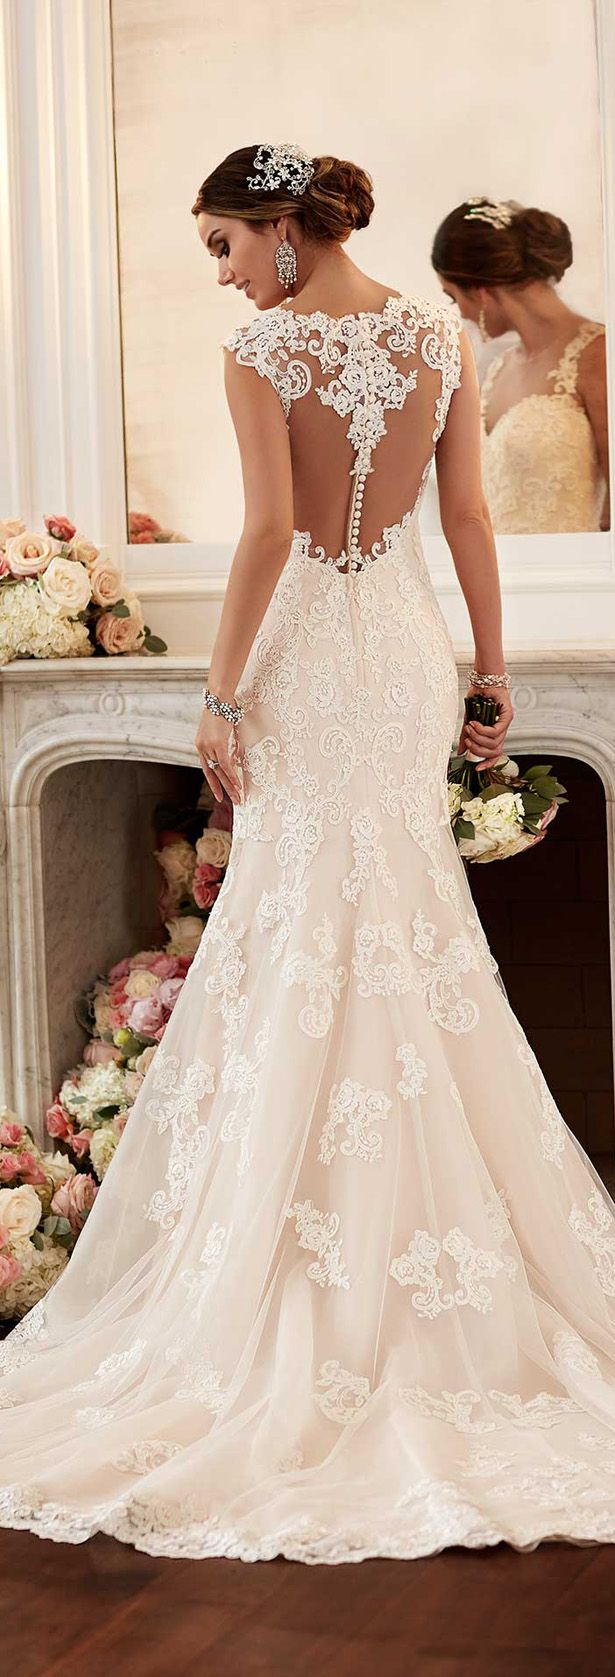 Stella York Spring 2016 Wedding Dresses Collection | http://www.tulleandchantilly.com/blog/stella-york-spring-2016-wedding-dresses-collection/